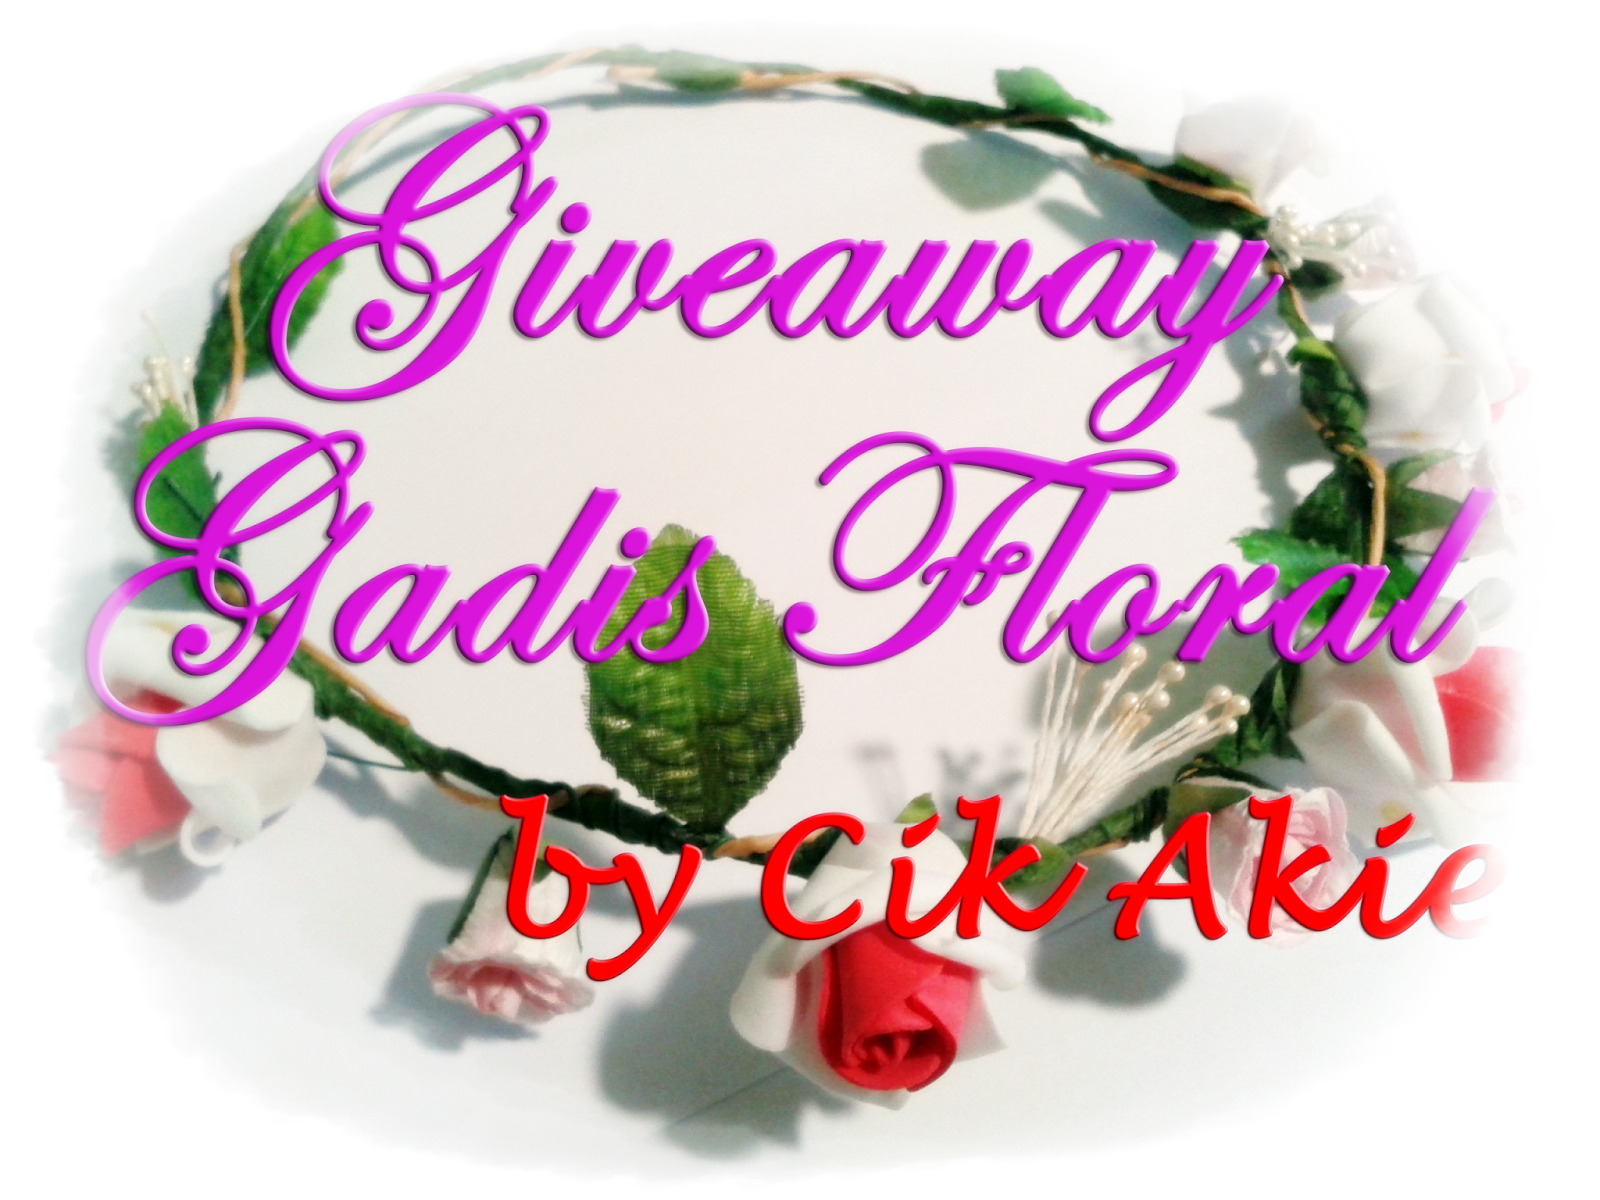 http://balqislifestyle.blogspot.com/2014/02/giveaway-gadis-floral-by-cik-akie.html